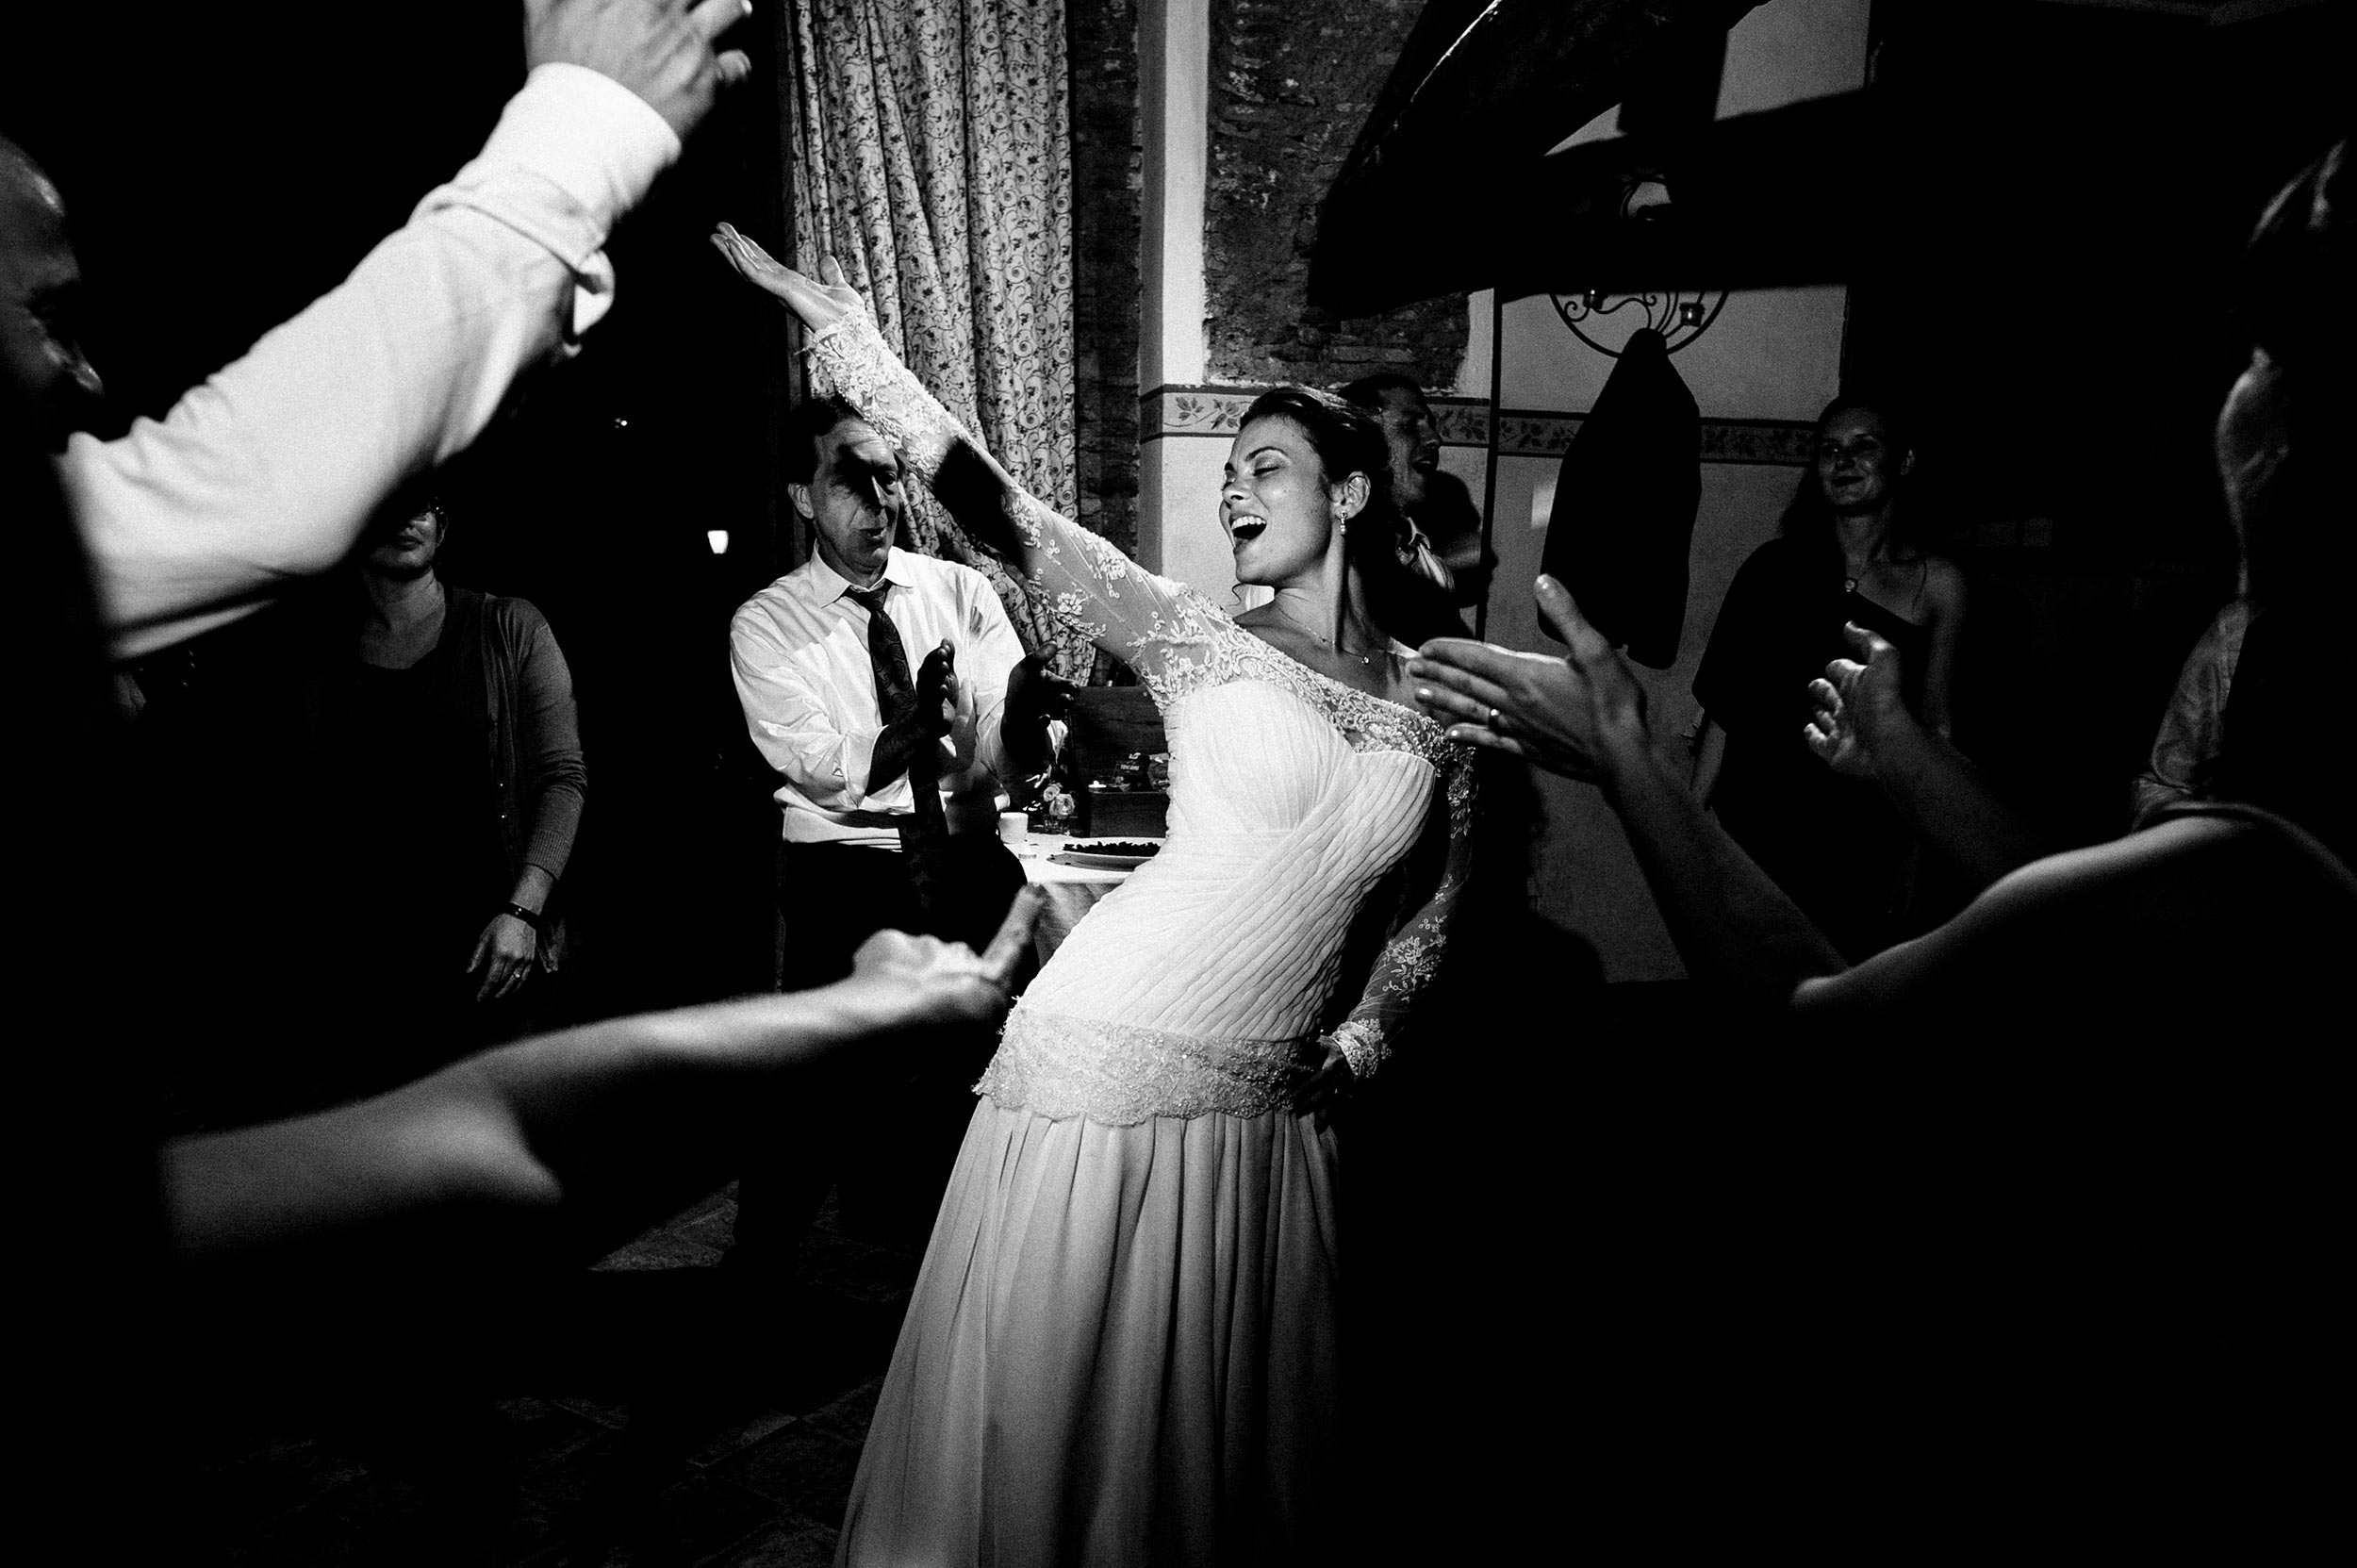 the-bride-dancing-at-night-wedding-in-rome-black-and-white-wedding-photography.jpg